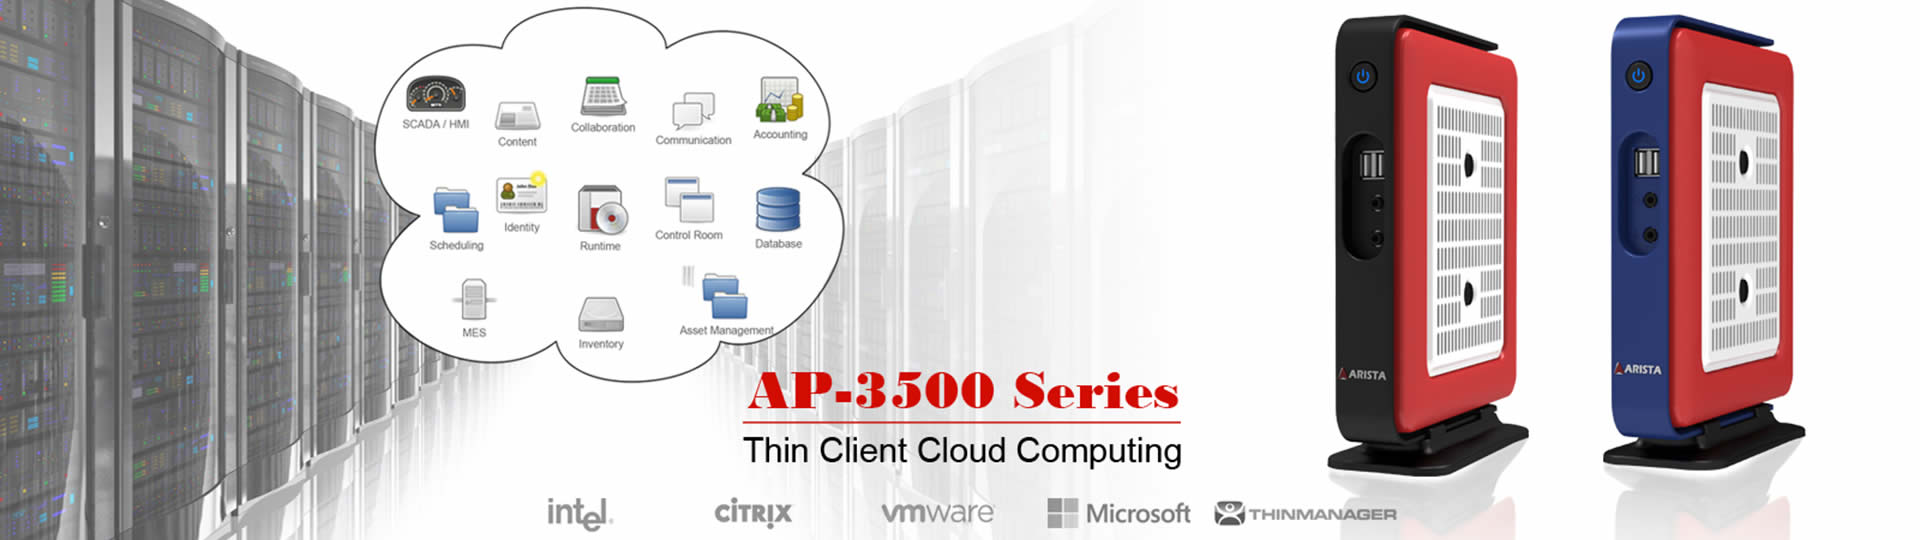 Office Thin Client AP-3500 Series